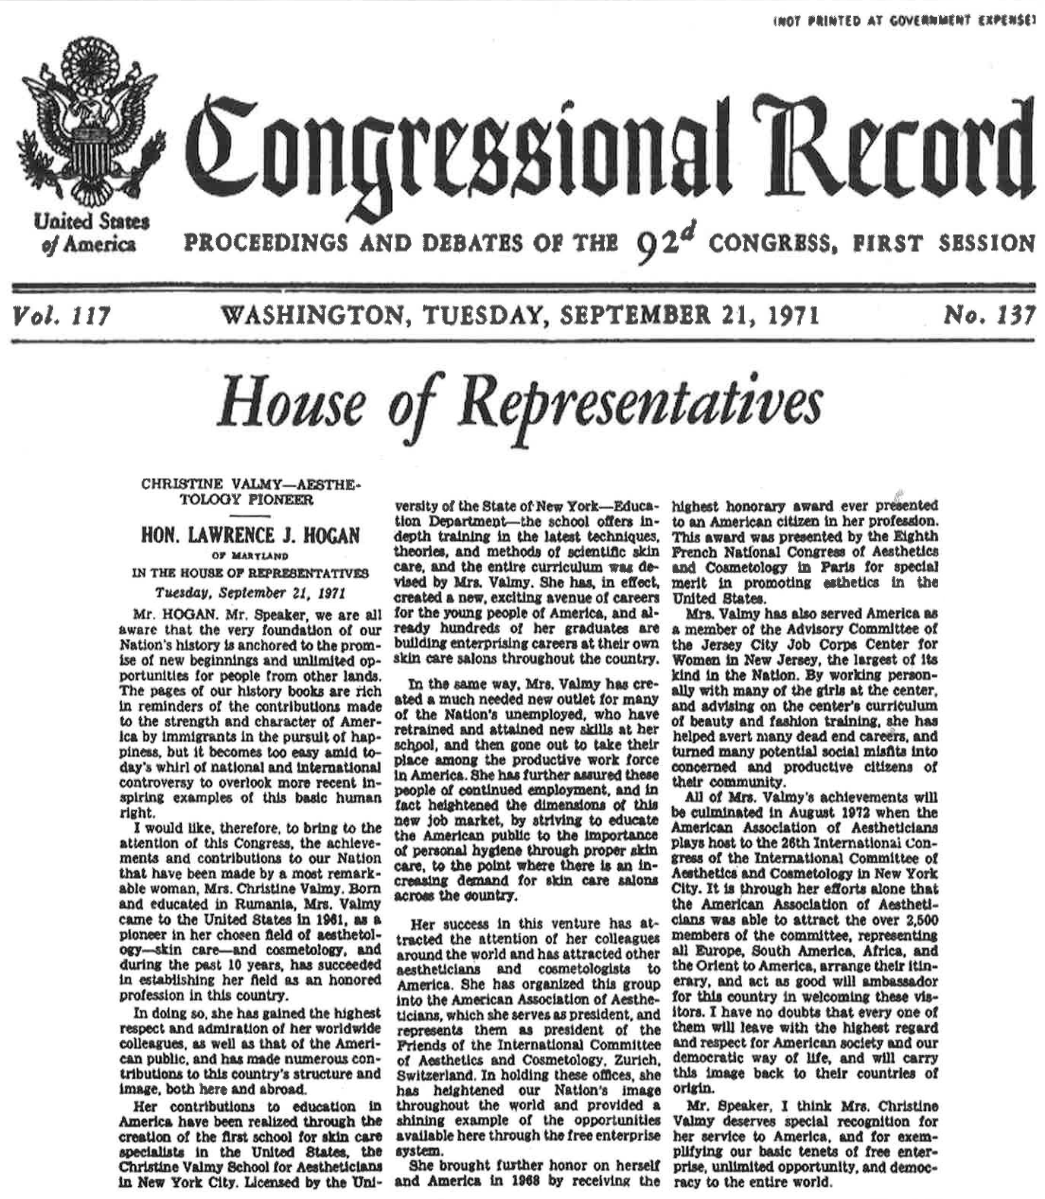 Congressional record praising Christine Valmy for pioneering the skin care industry in the United States.